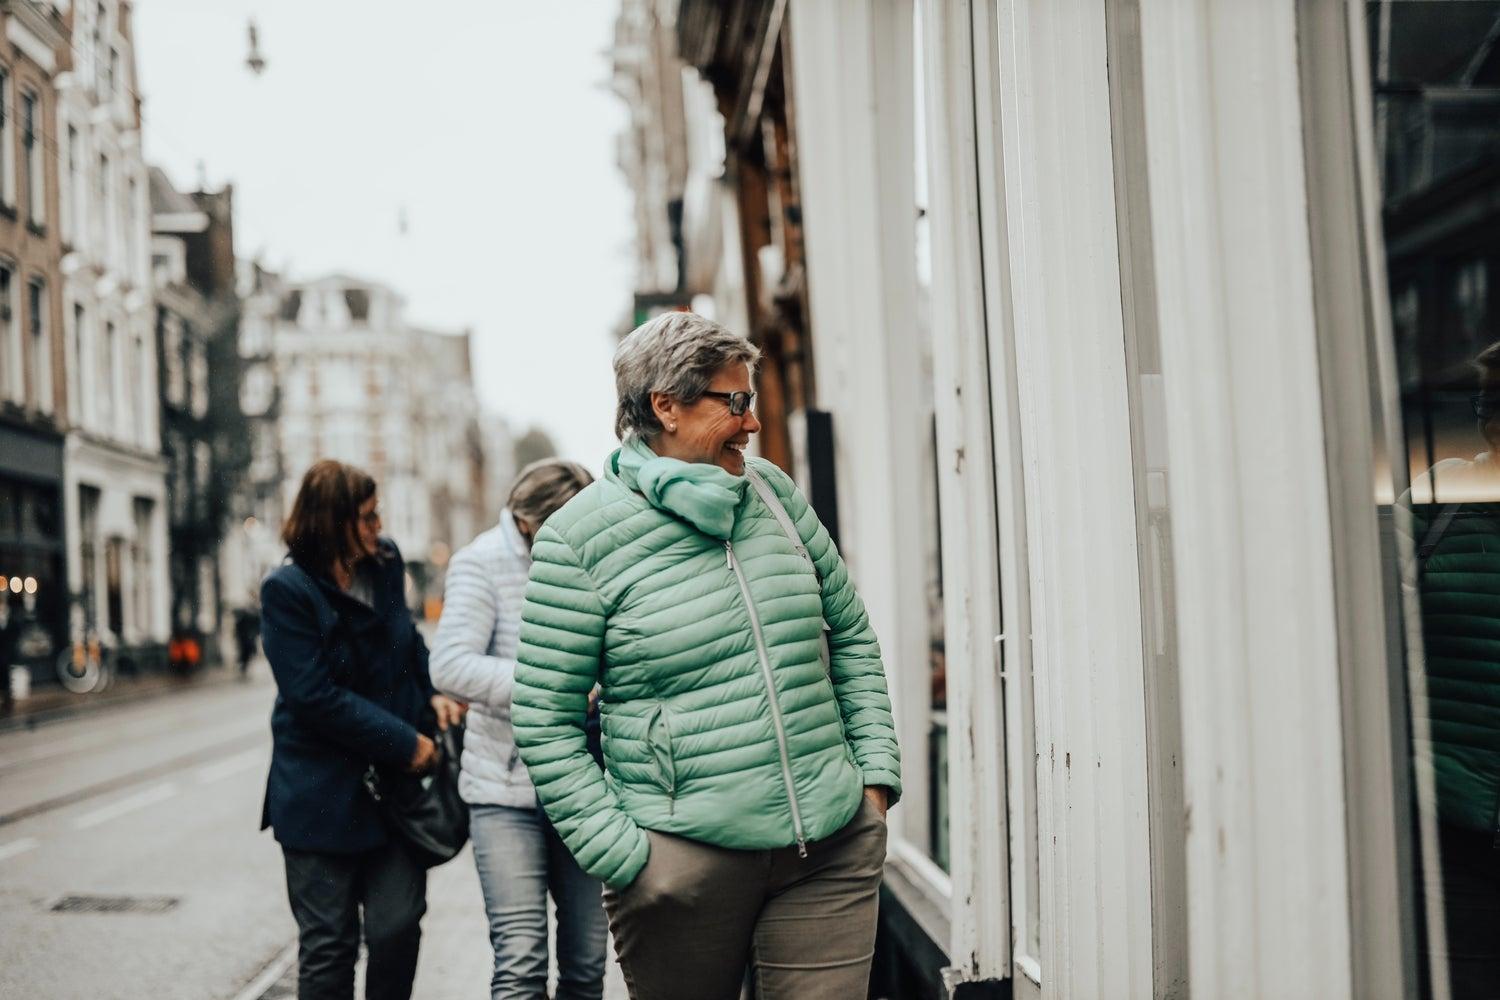 a woman in a green winter jacket walking on the street and looking in a window while smiling